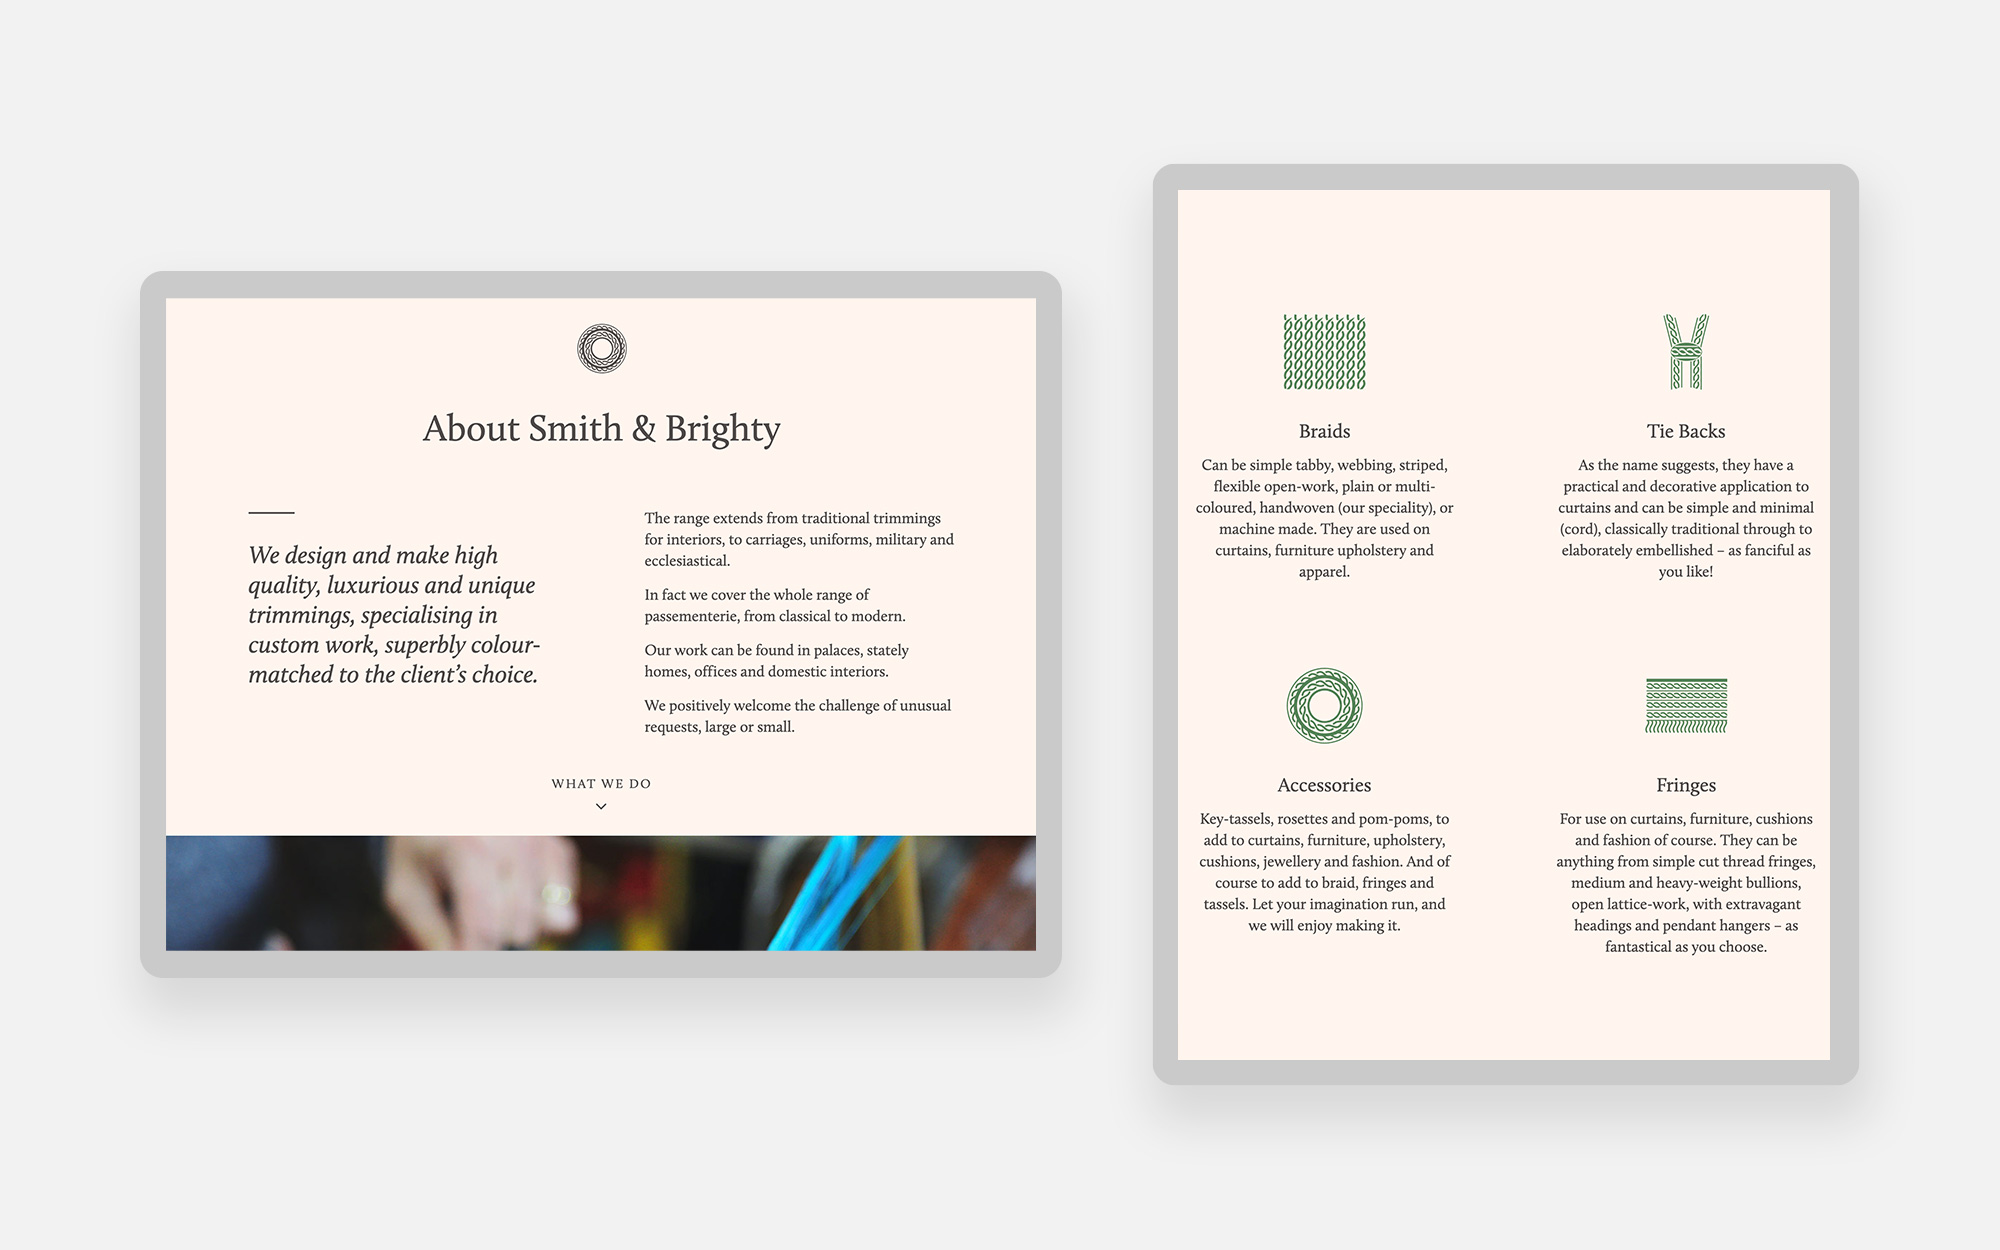 Smith and Brighty website design 2